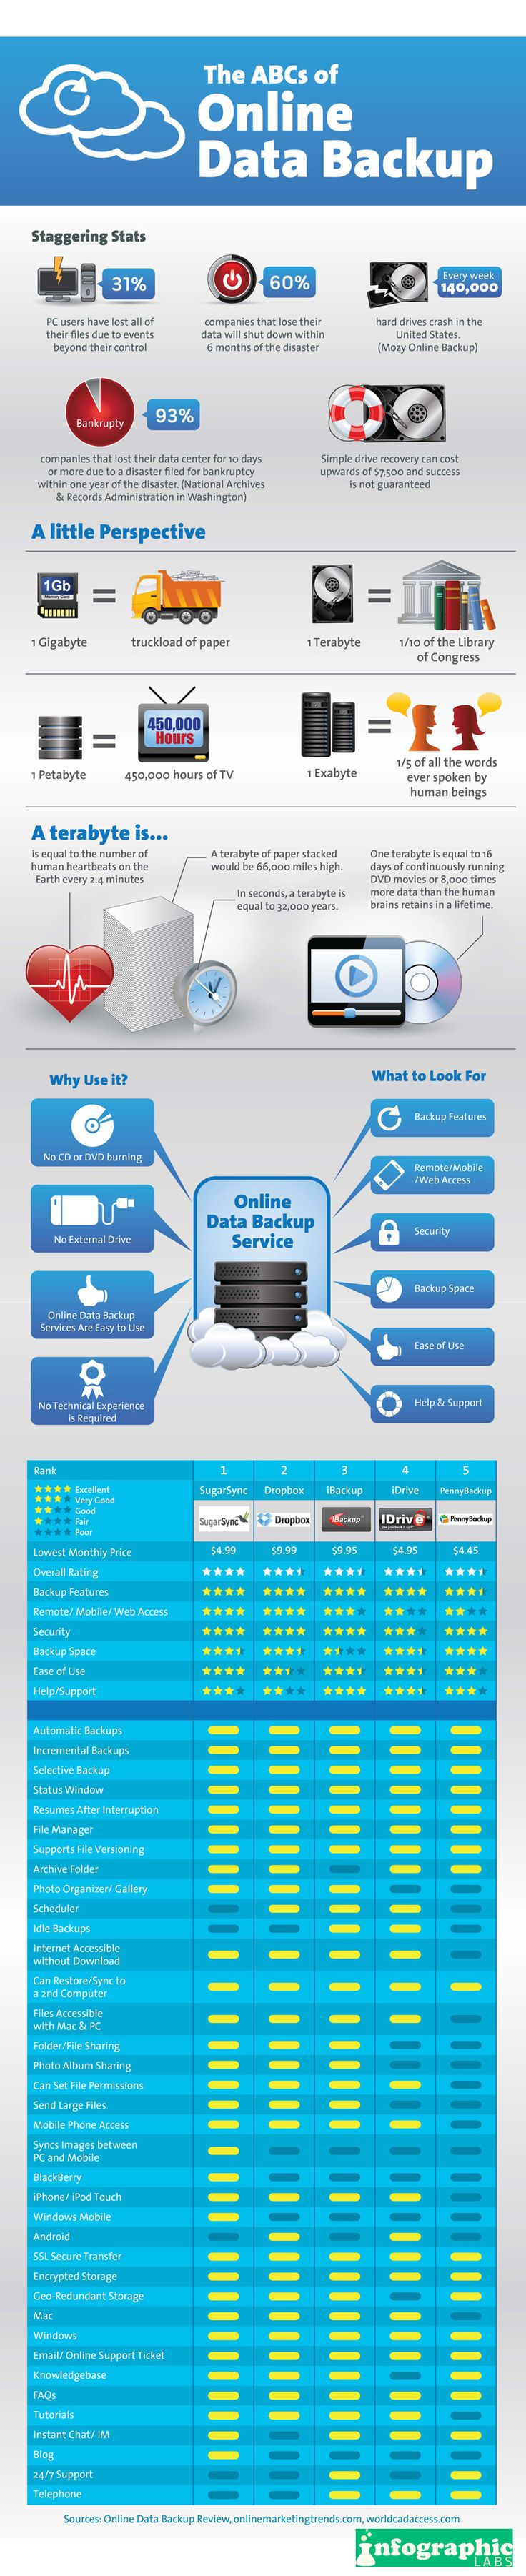 online data backup is critical to your data